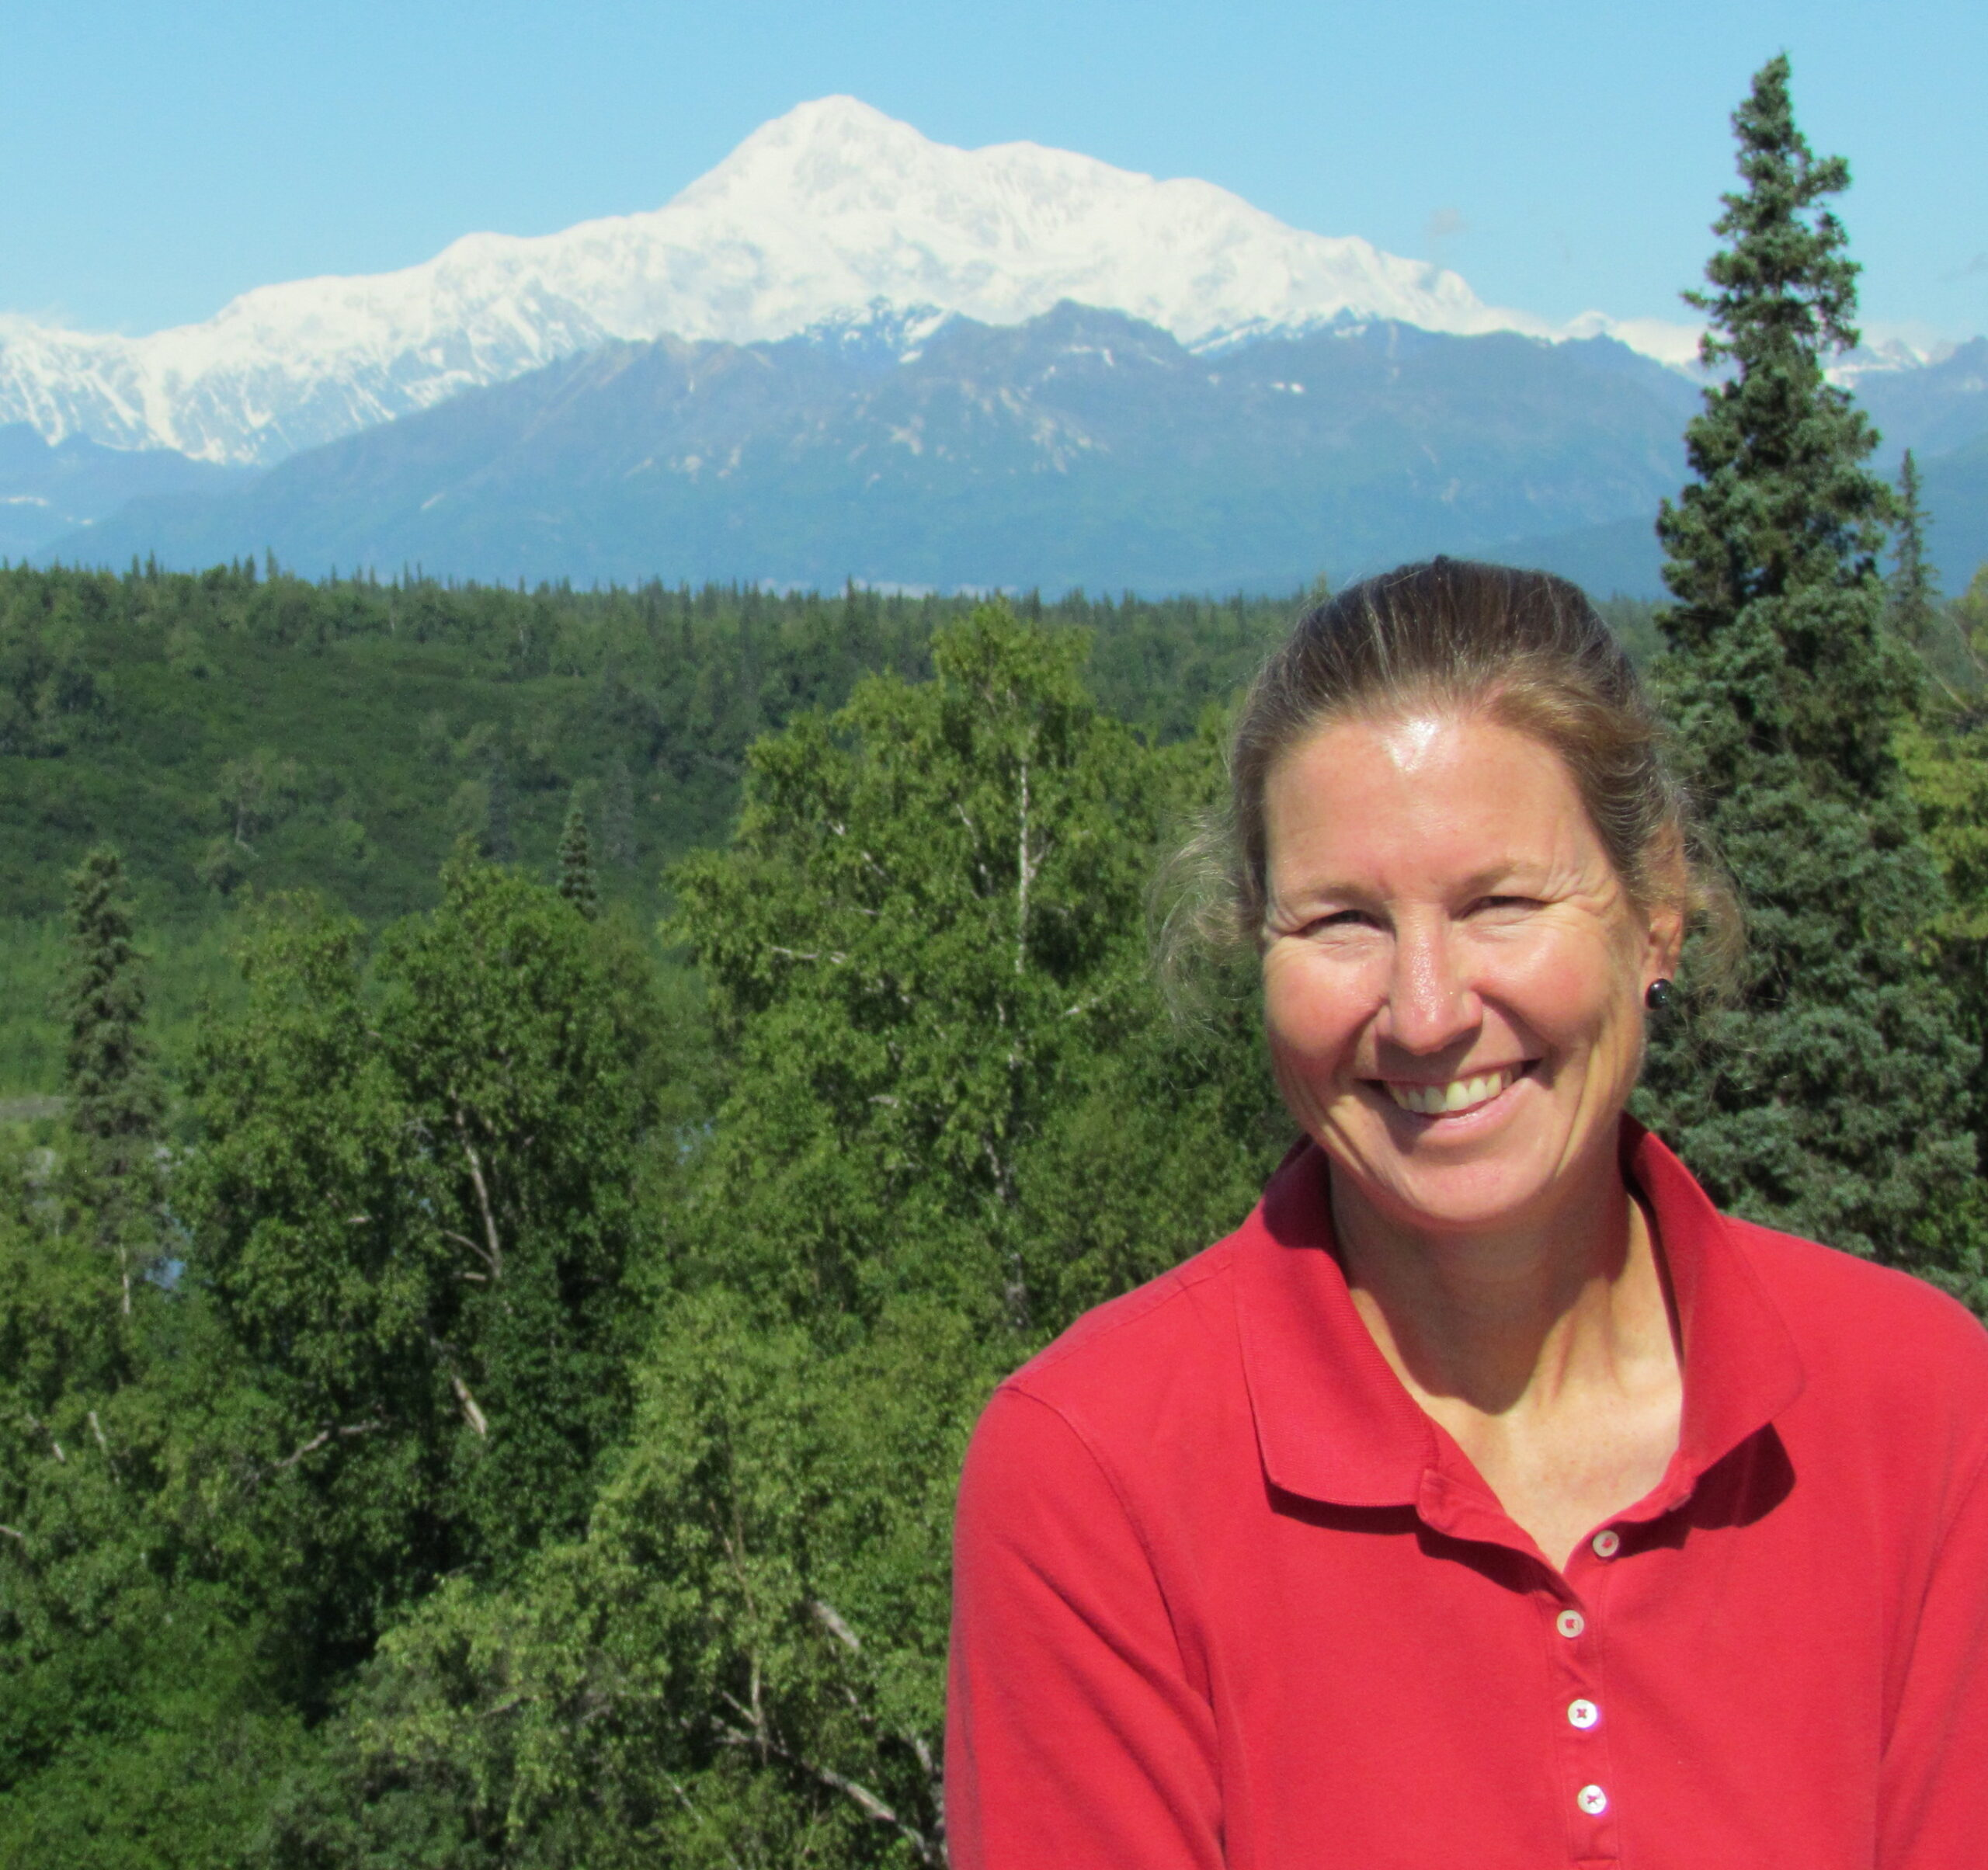 Betsy wearing red shirt smiling with forest and Denali mountain in the background